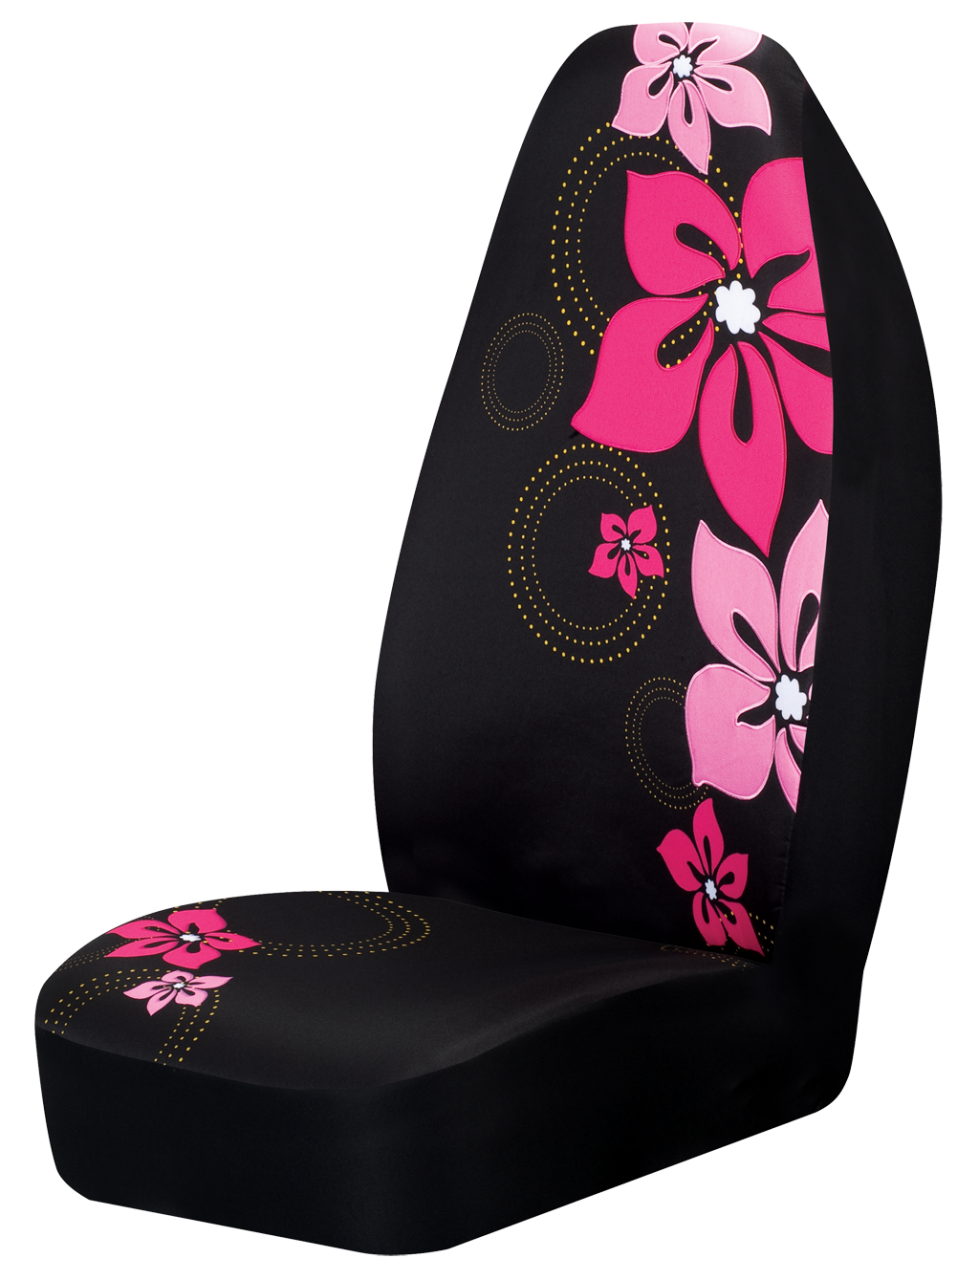 hot pink flower car seat cover girly car accessory car pinterest seat covers car seats. Black Bedroom Furniture Sets. Home Design Ideas